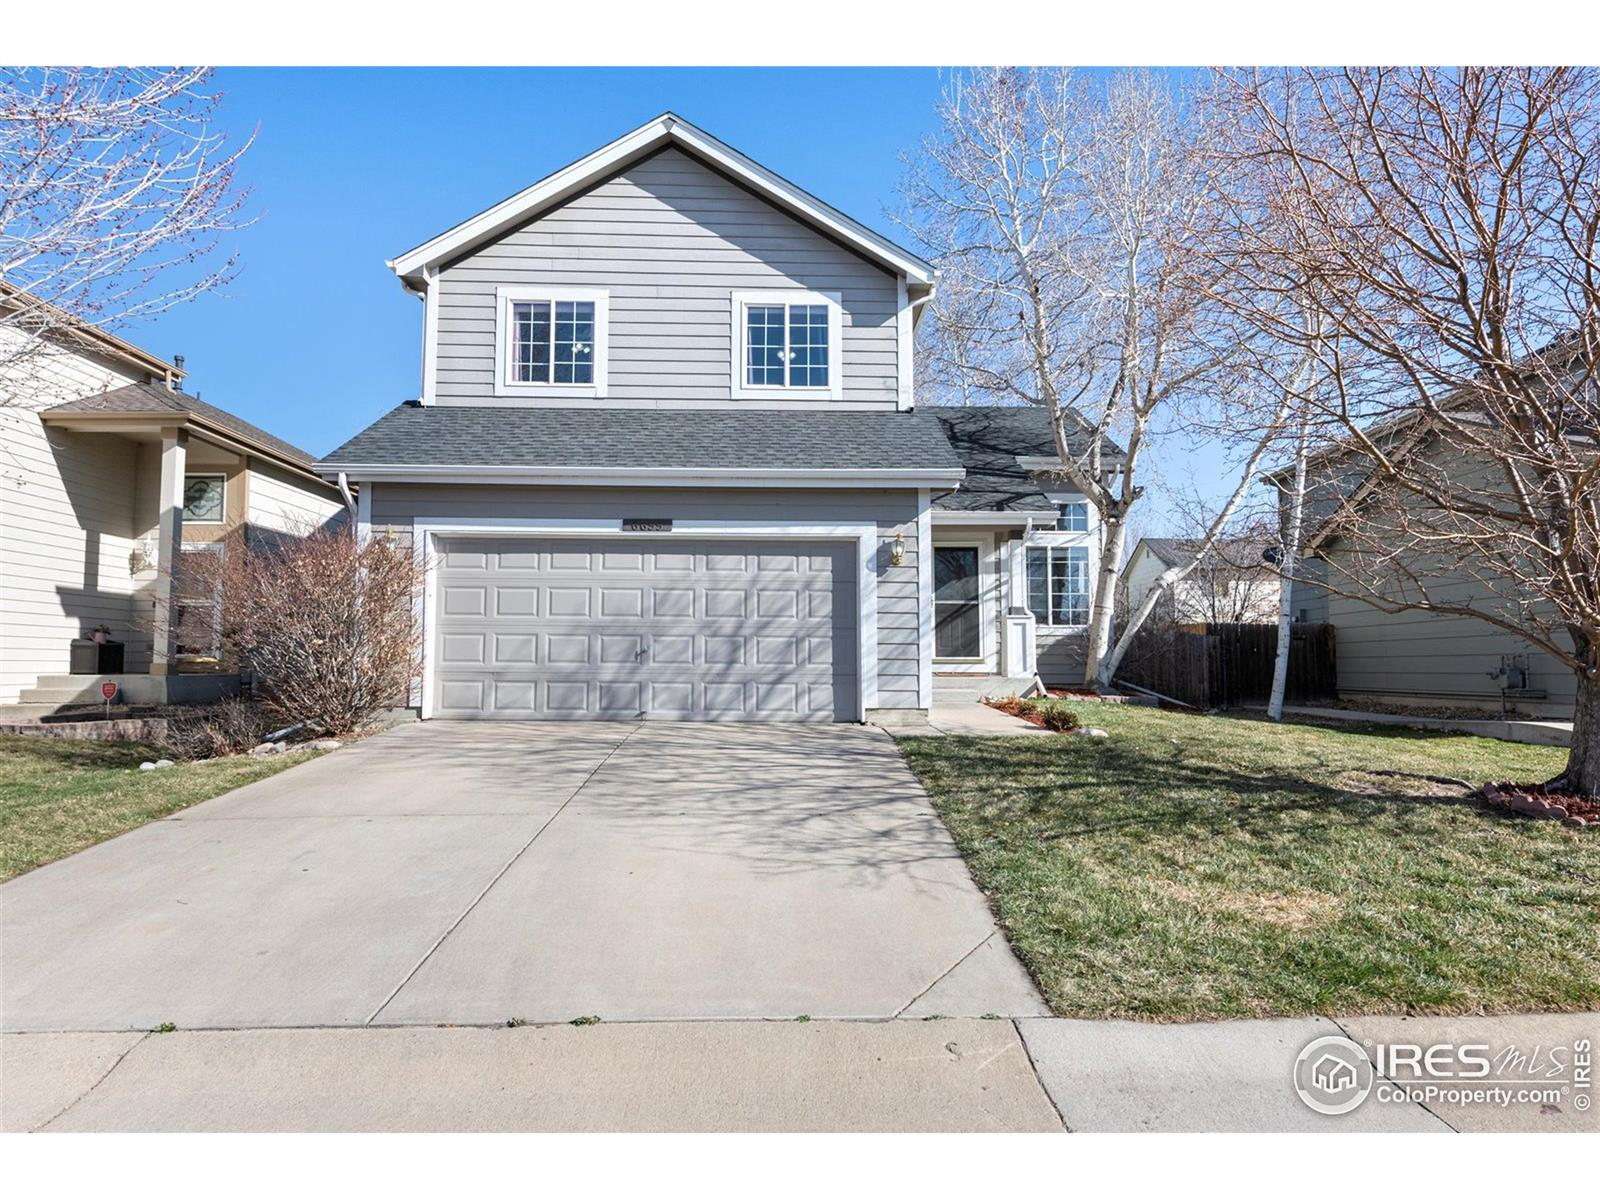 6699 St Vrain Ranch Boulevard, Firestone, CO 80504 - #: IR936959